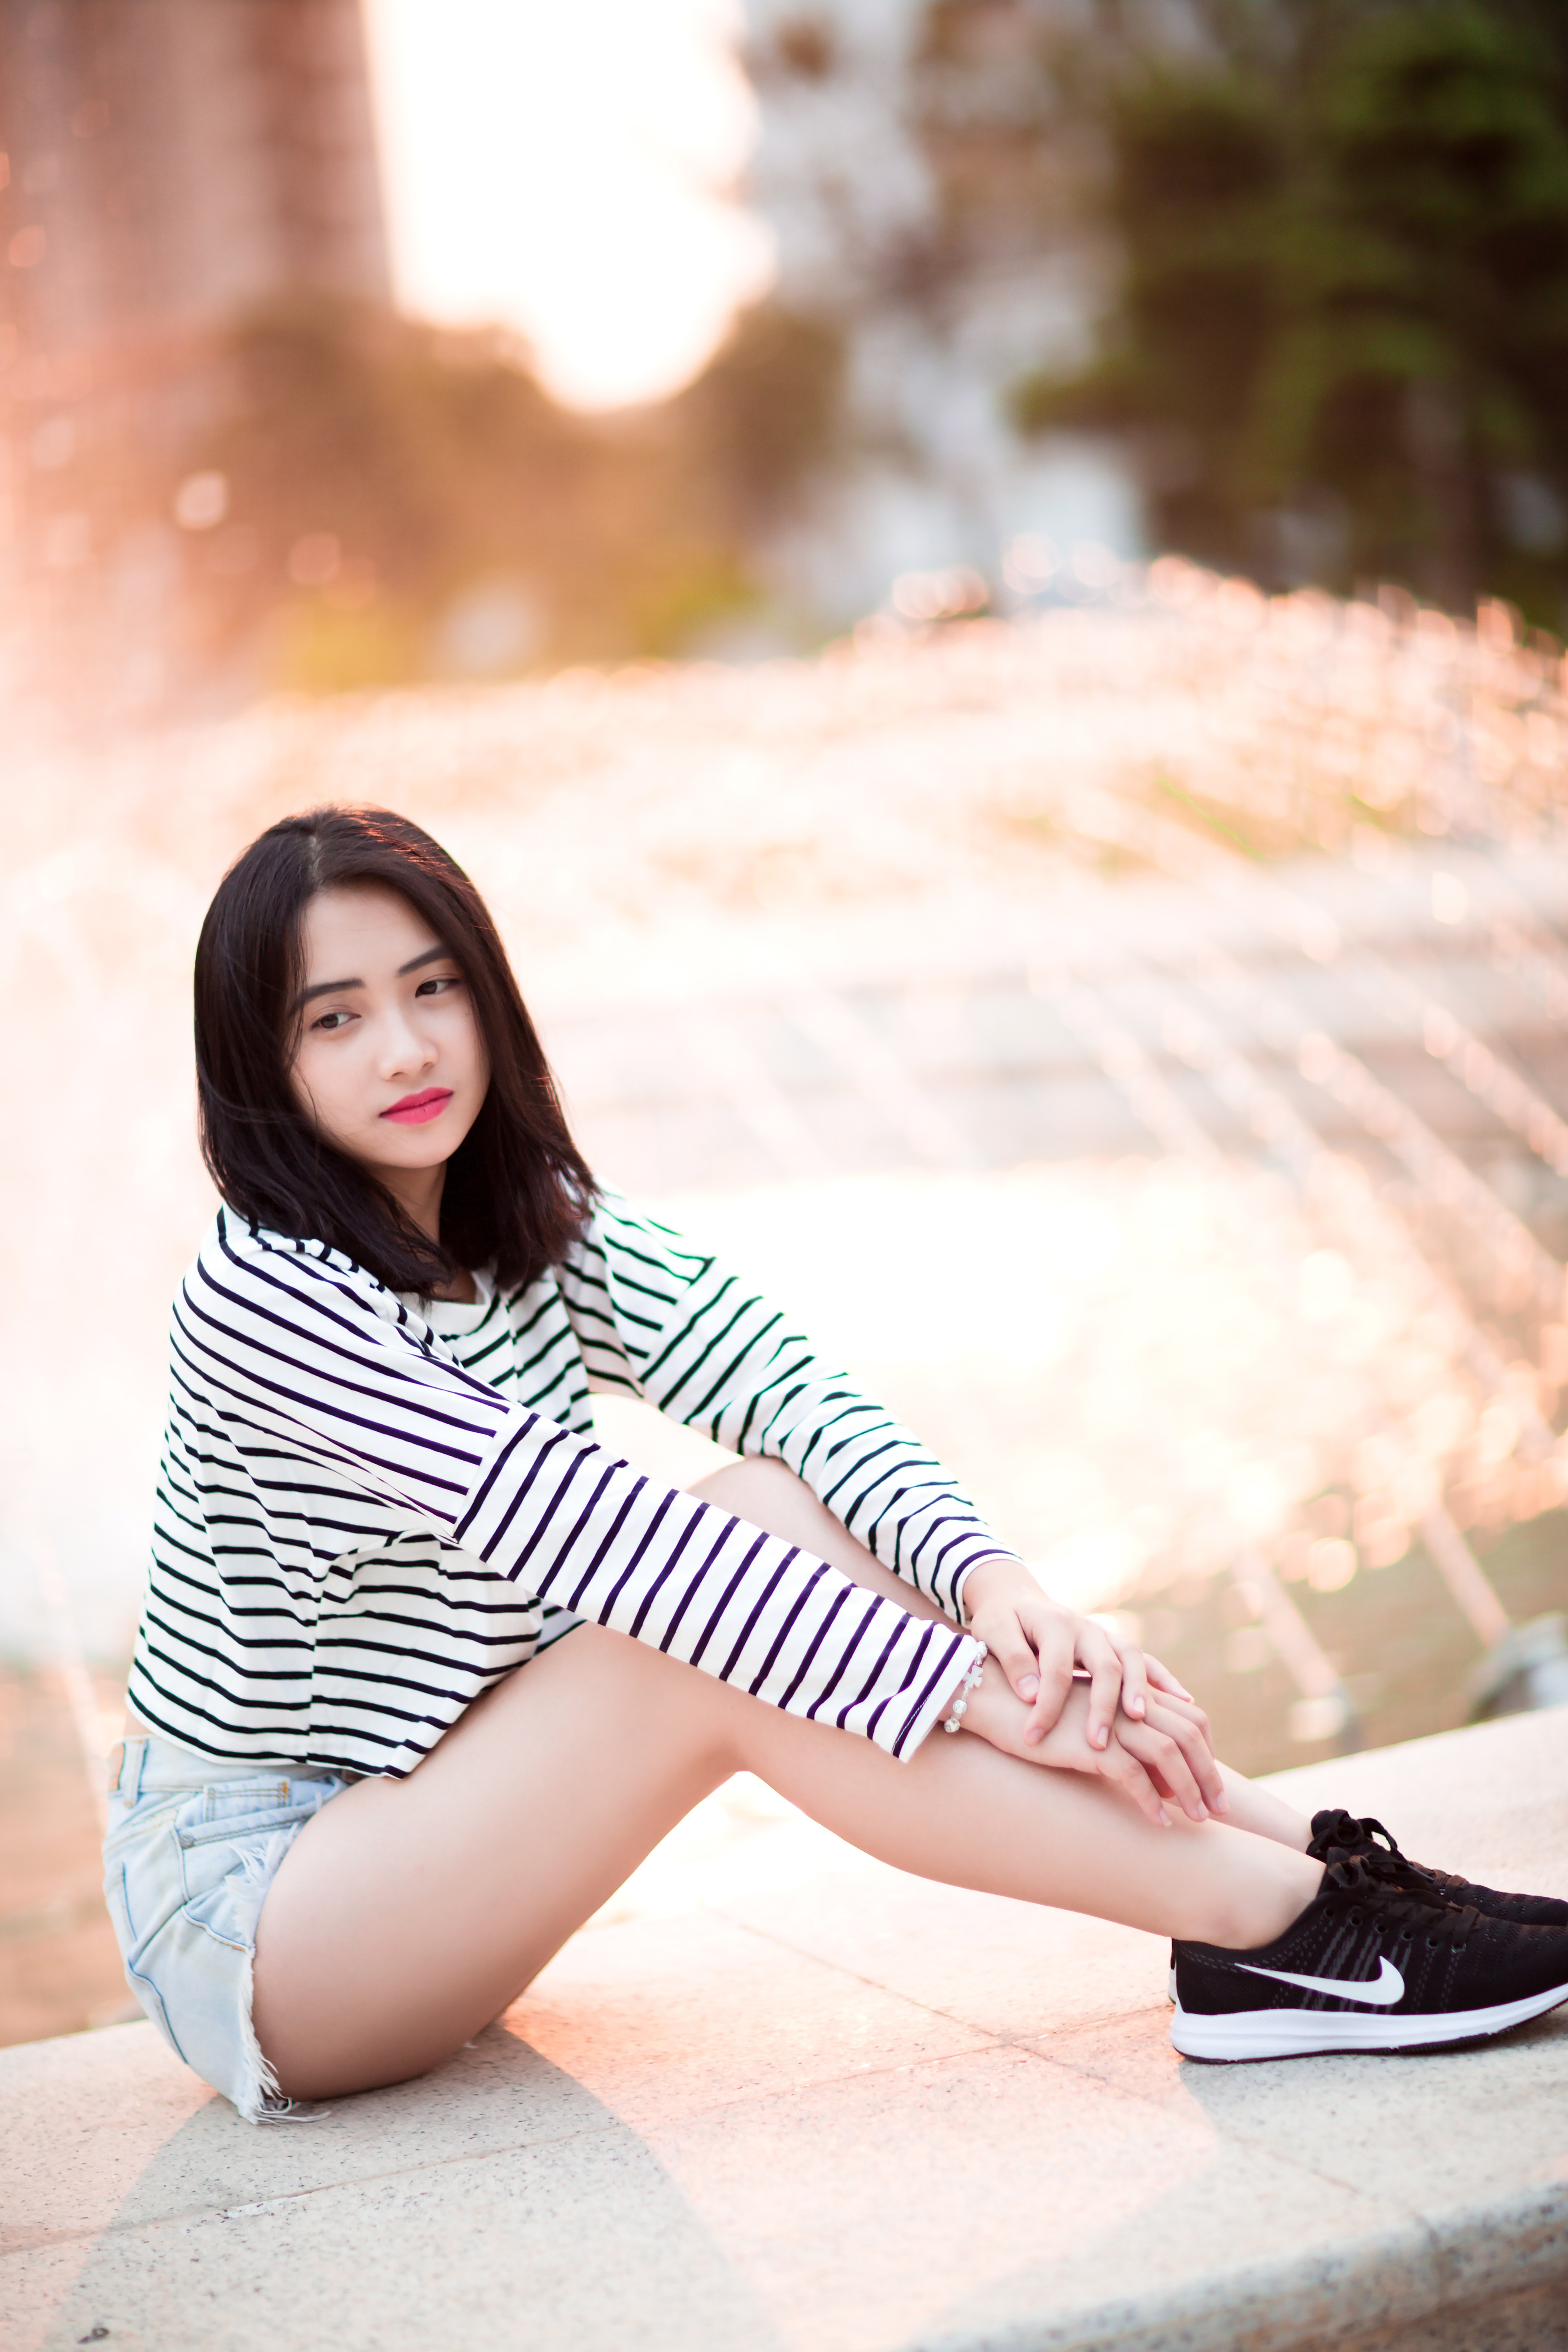 caroga lake asian girl personals 100% free dating site, personals, chat, profiles, messaging, singles, forums etc all free why go anywhere else.